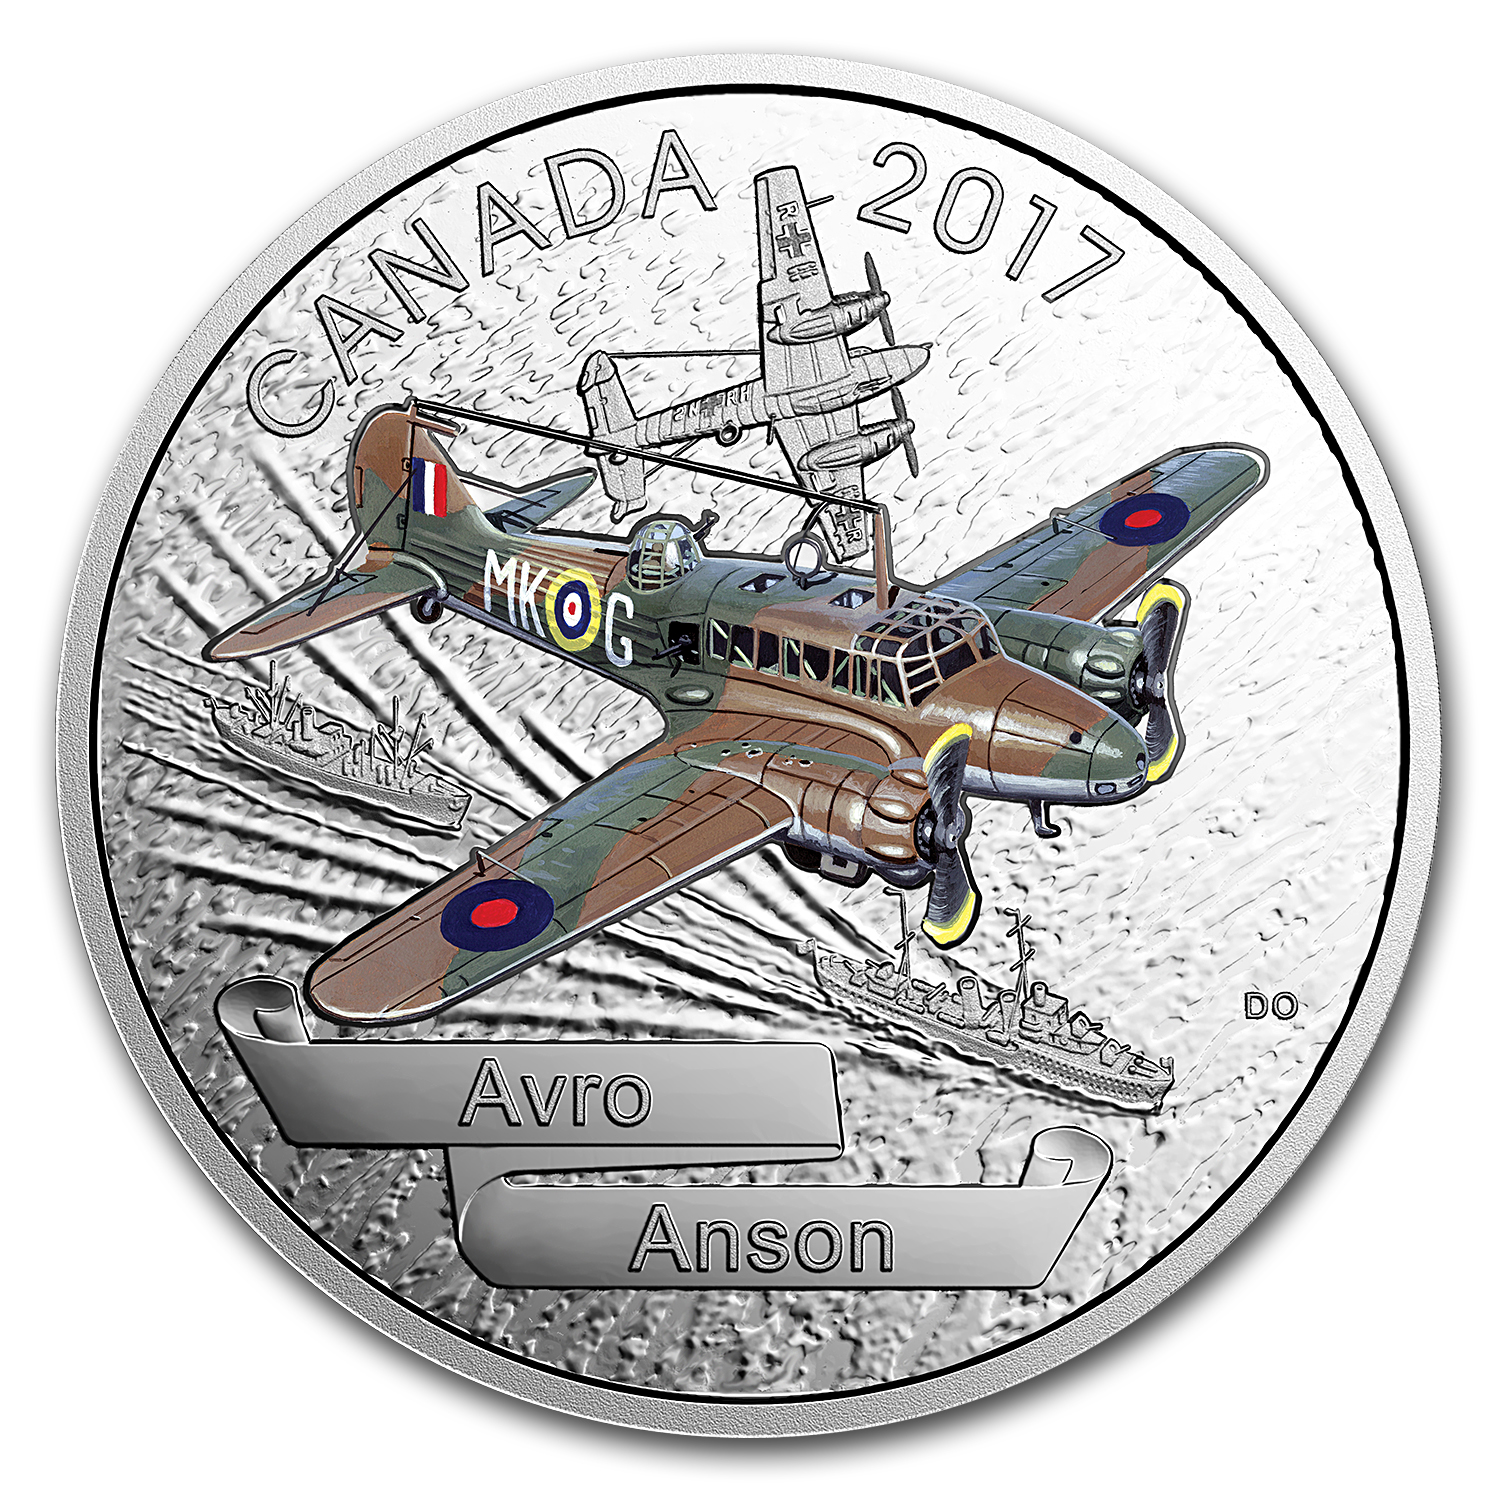 2017 Canada 1 oz Silver $20 Aircraft of WWII Avro Anson